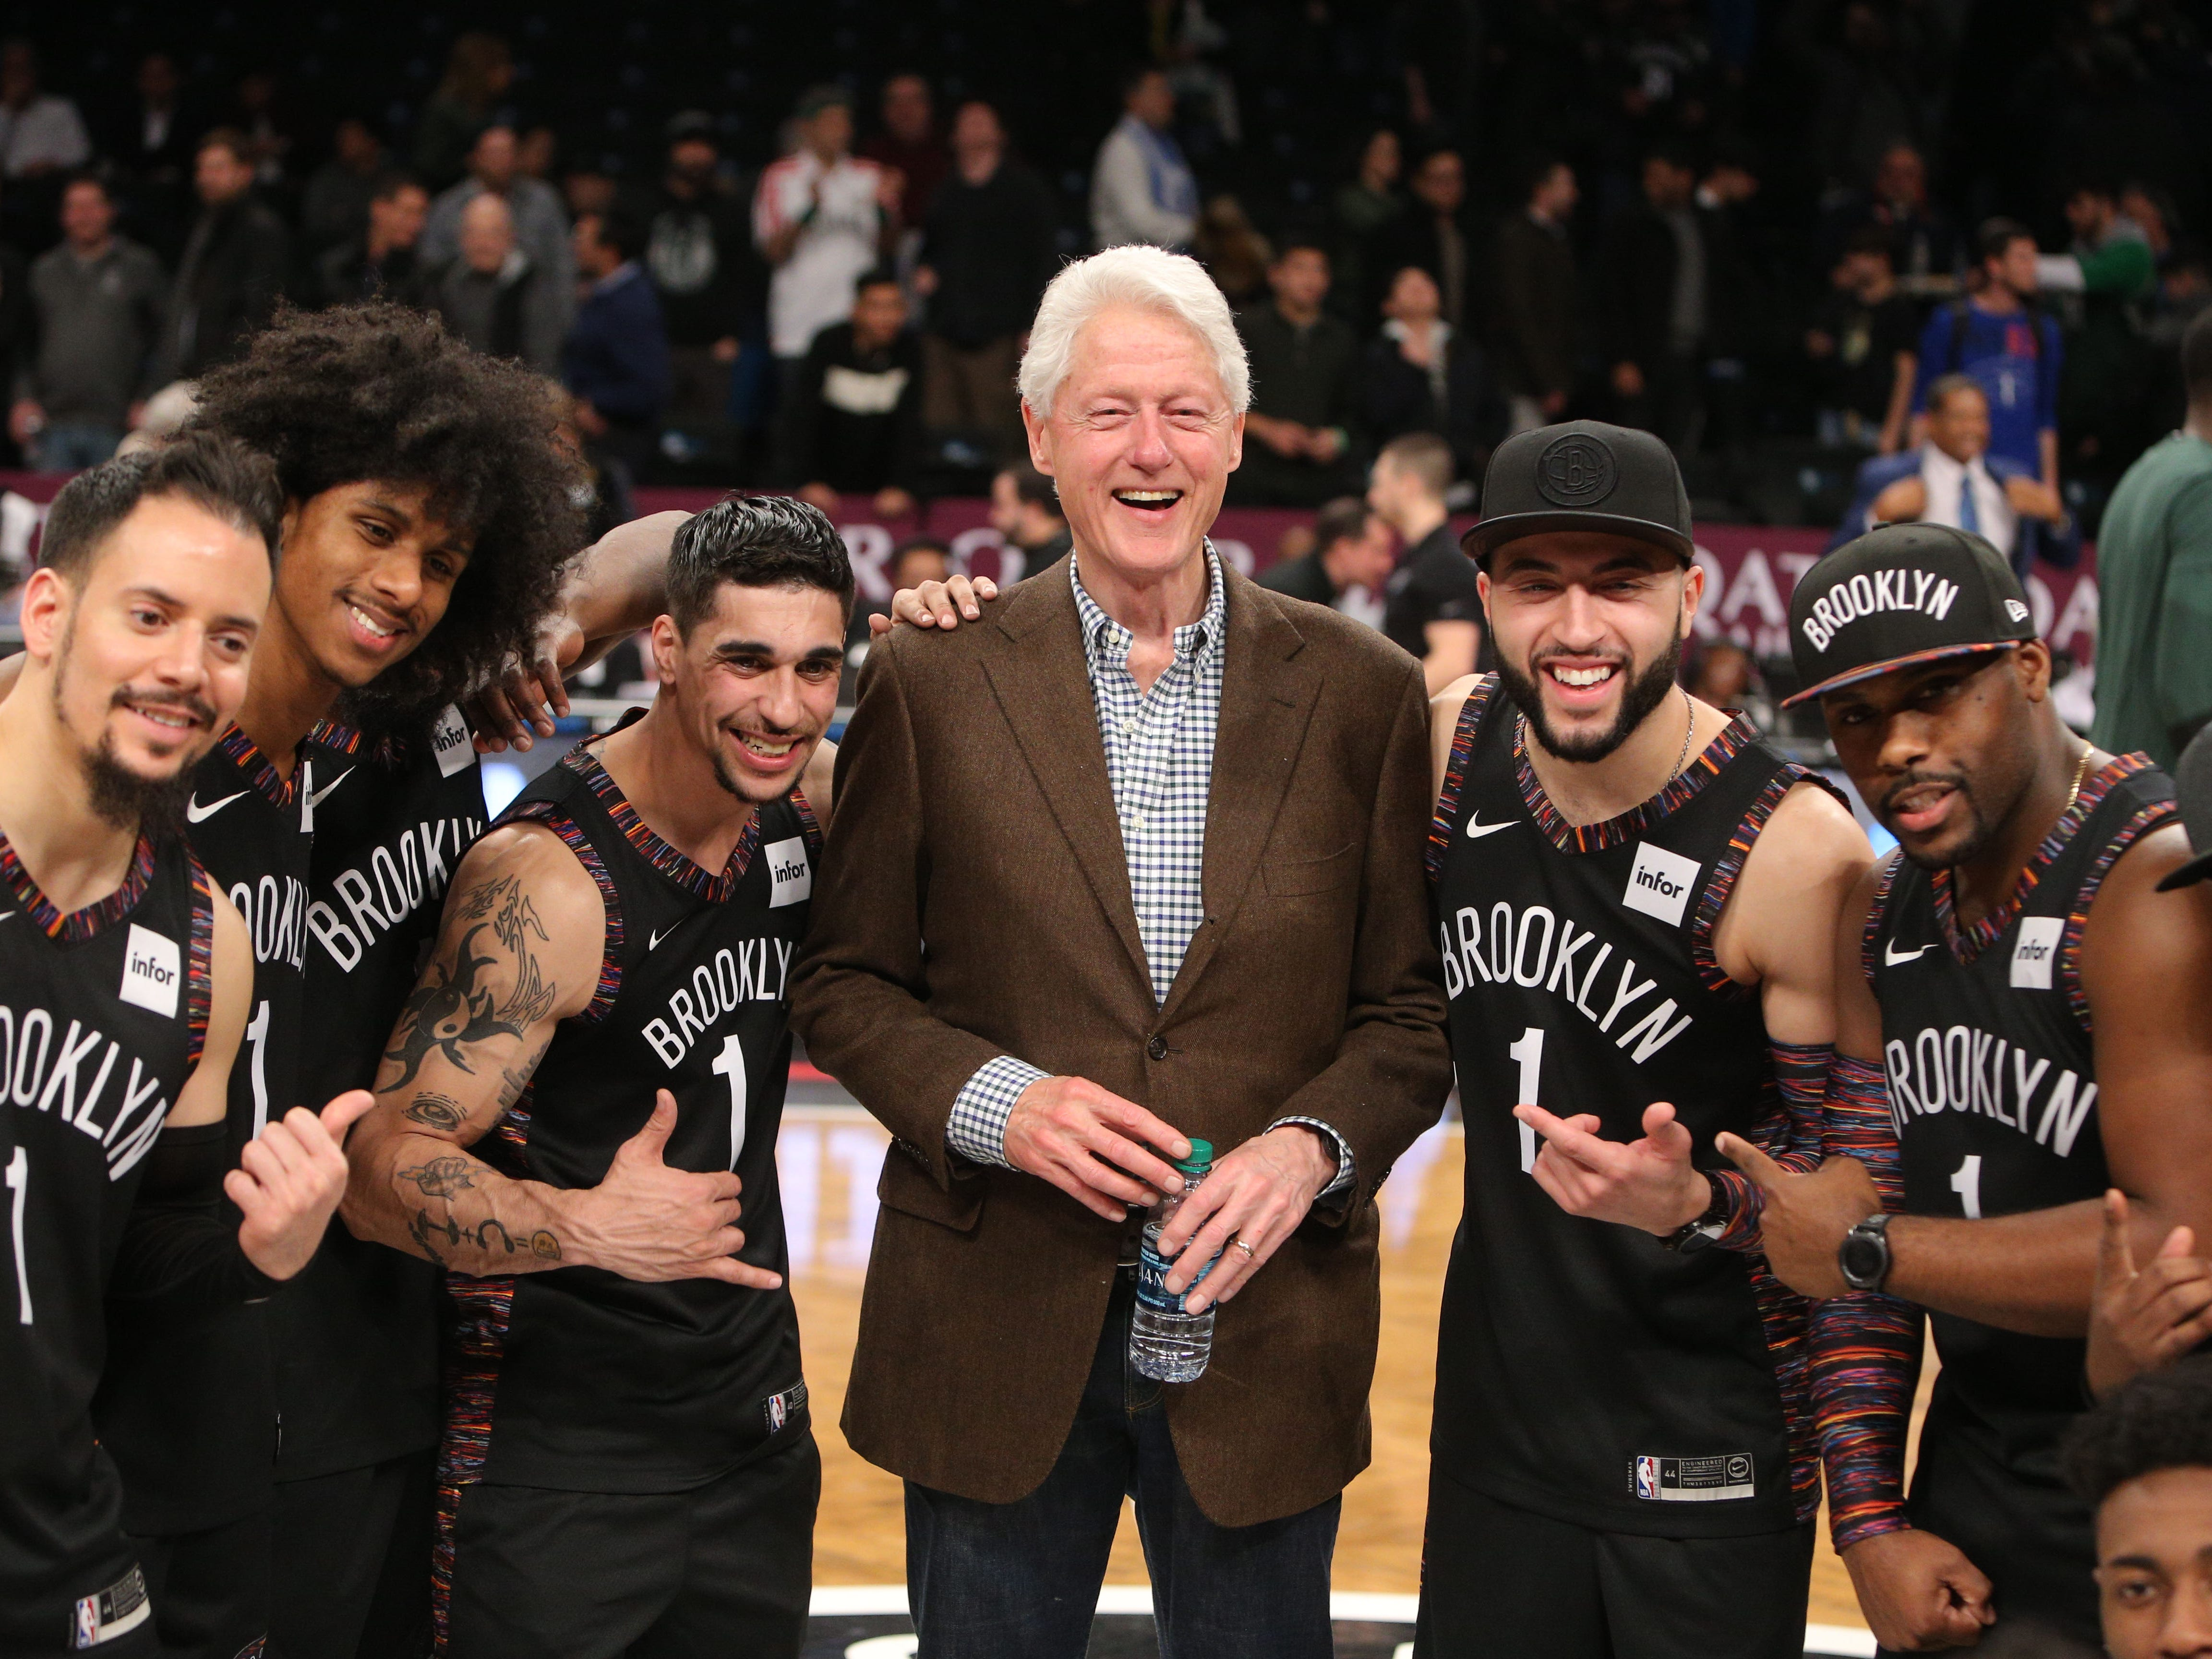 Feb. 4: Former U.S. President Bill Clinton poses for a photo with the Brooklyn Nets hype crew after a game against the Milwaukee Bucks at Barclays Center.